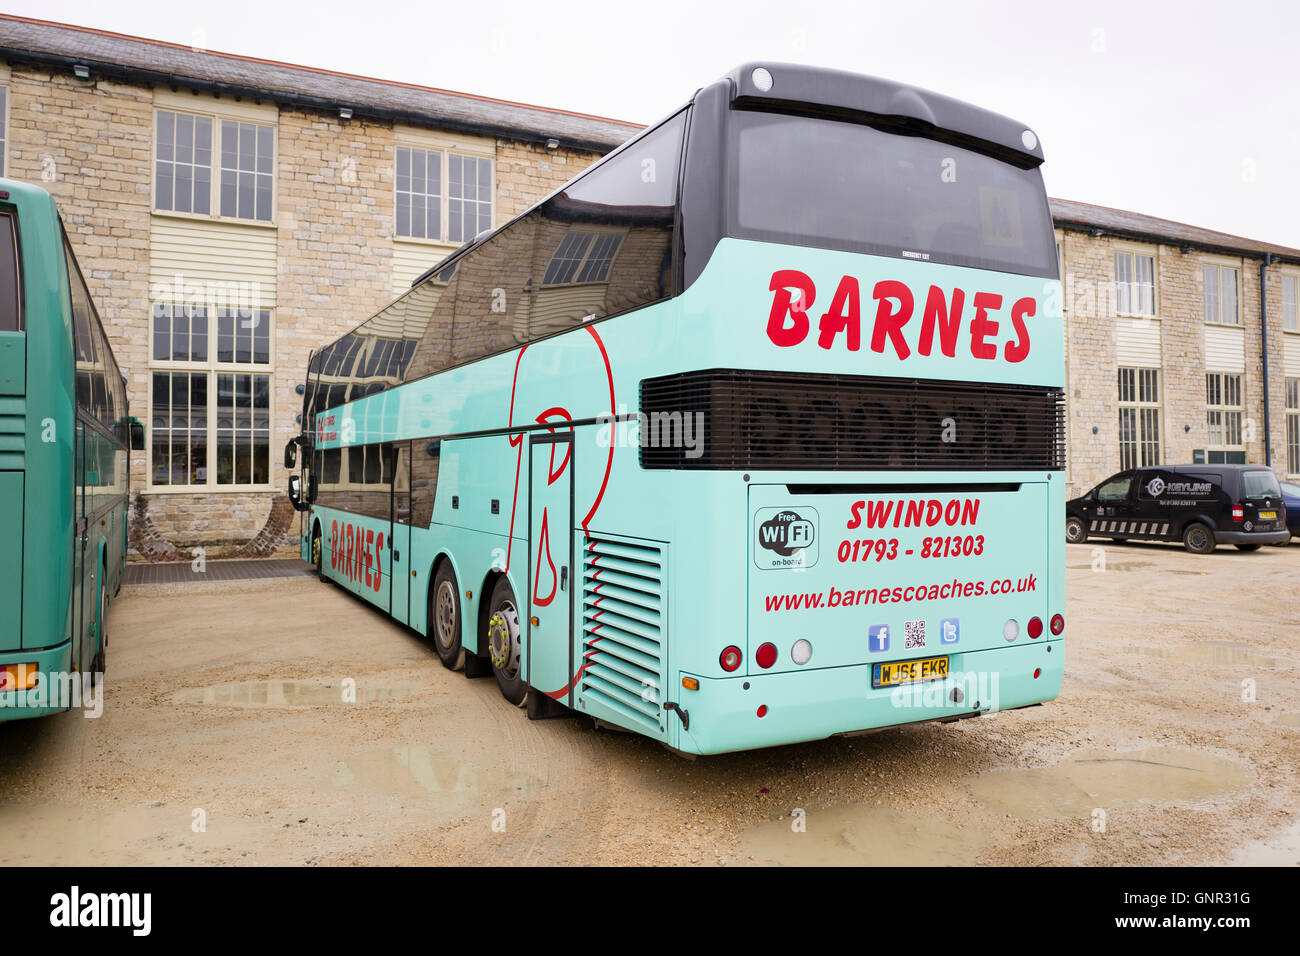 A double-decker touring coach operated by Barnes of Swindon UK - Stock Image